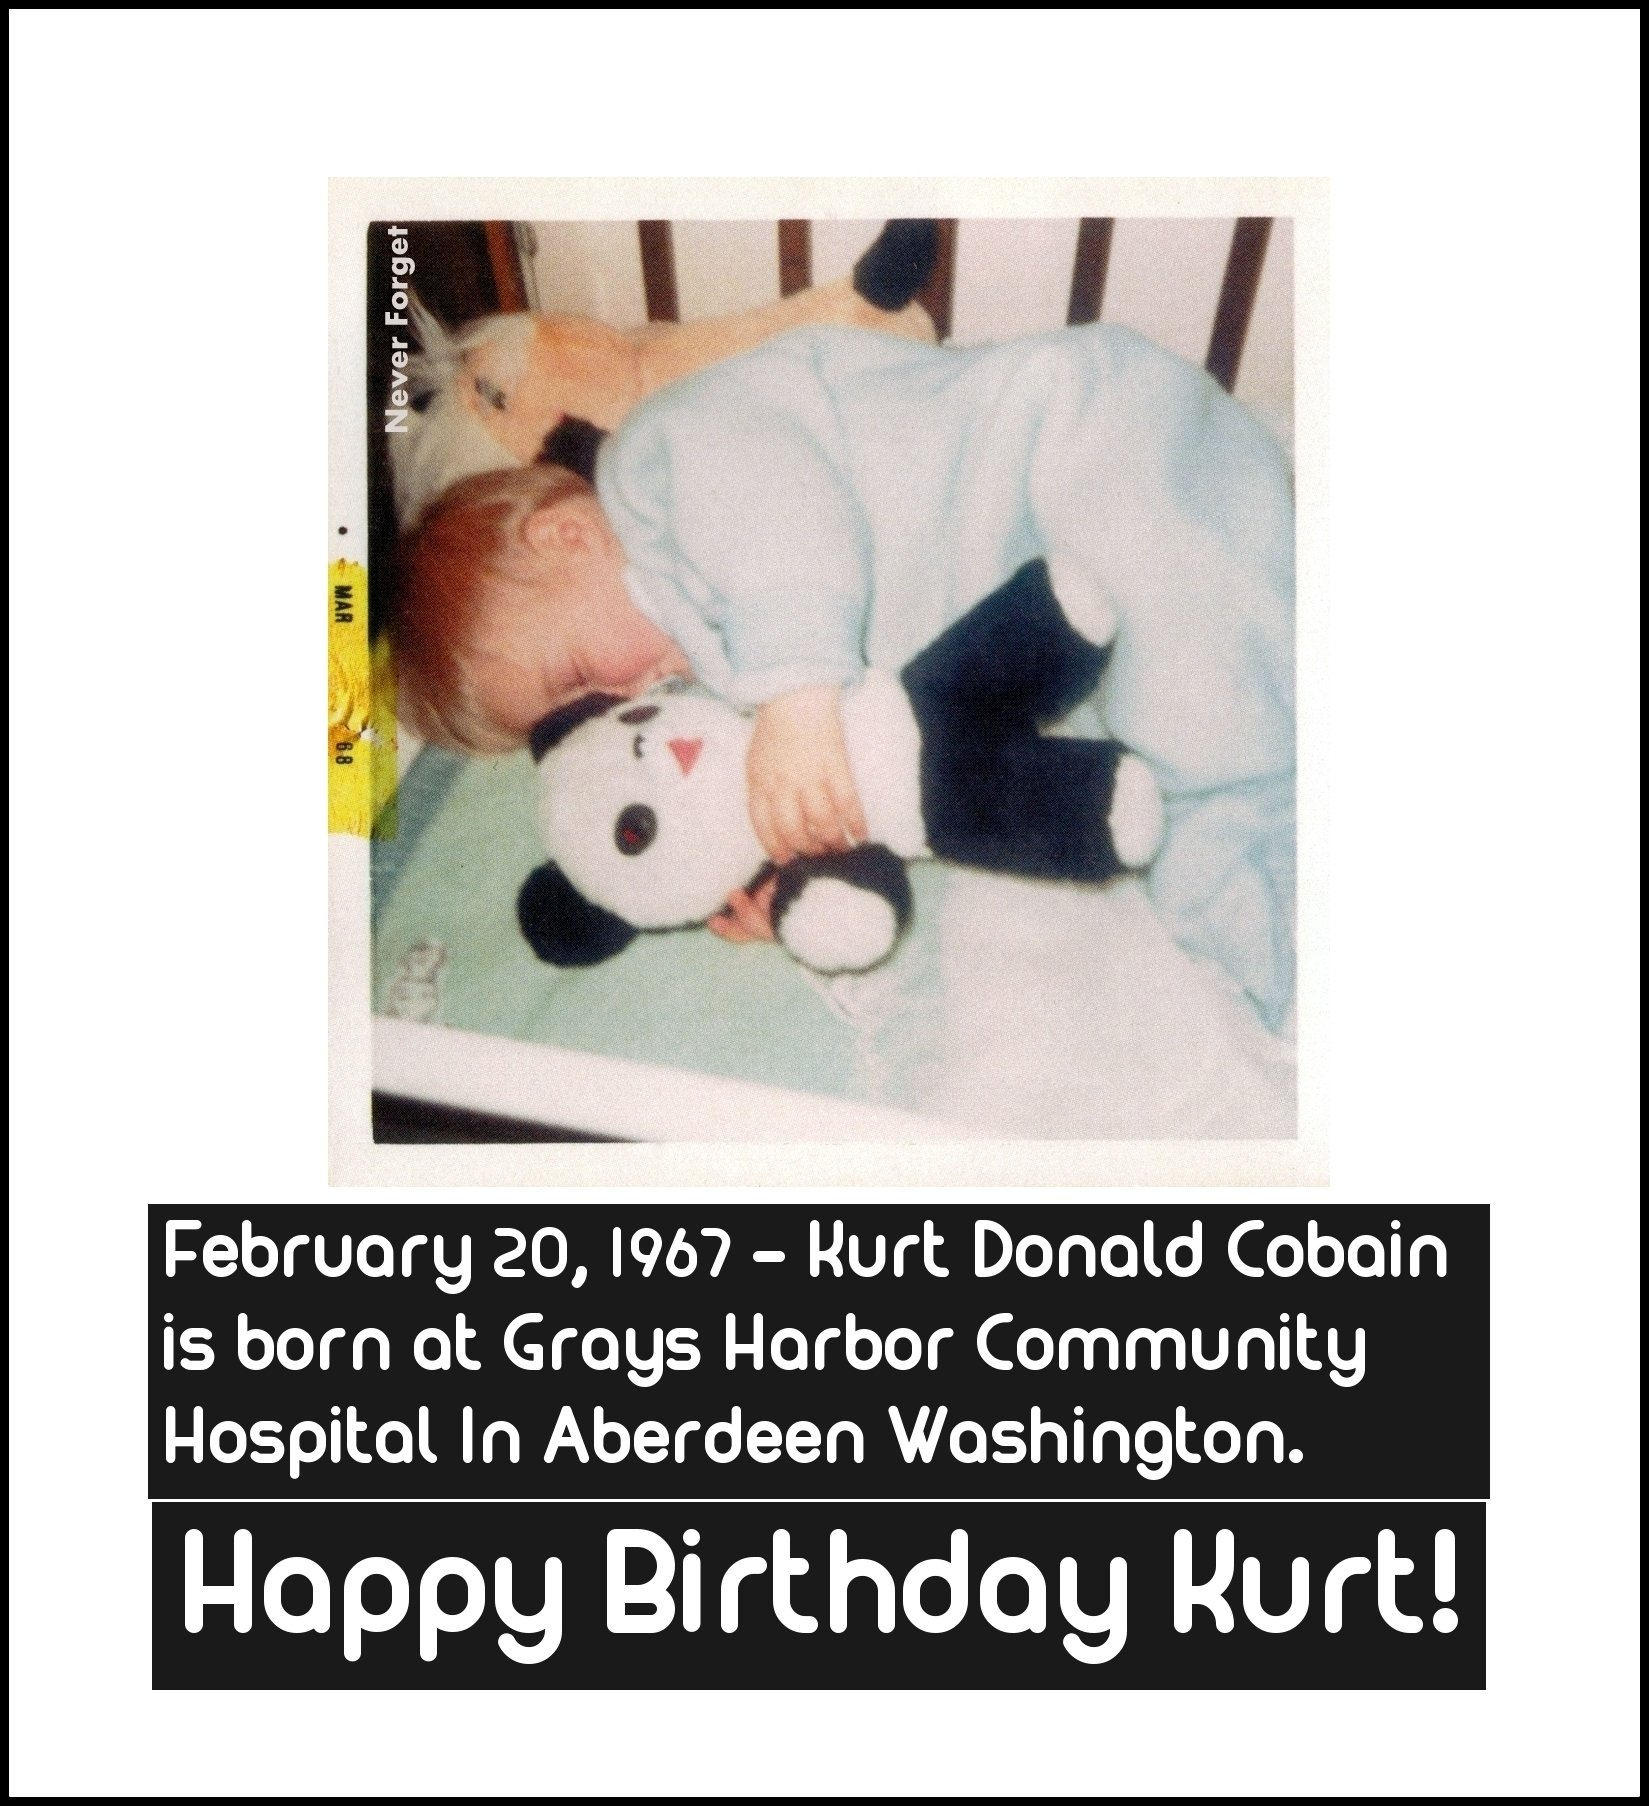 February 20, 1967 Kurt Cobain is born in Aberdeen Washington. Happy Birthday Kurt!